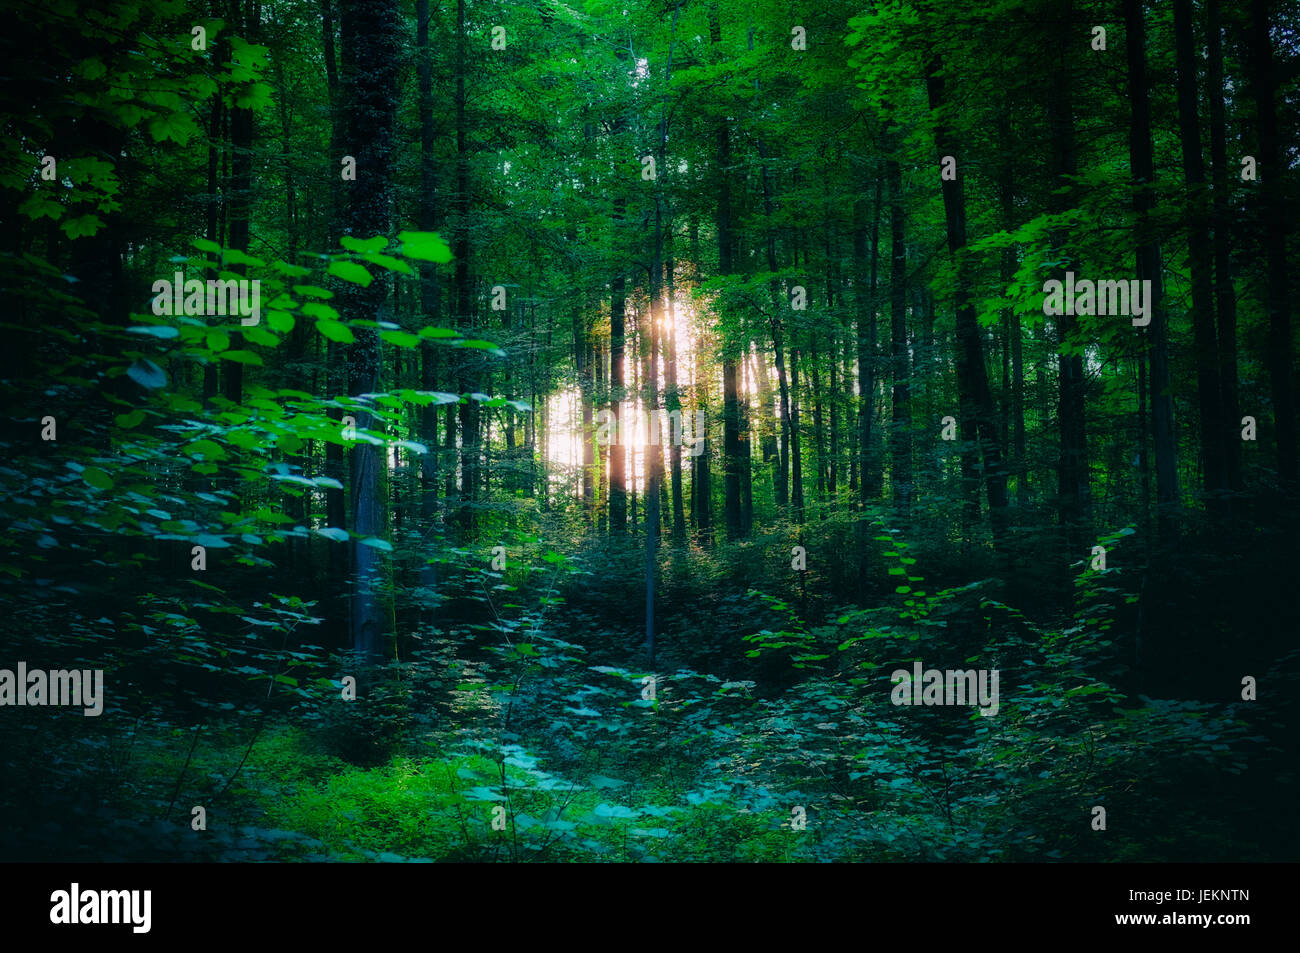 Light shining through the trees in the woods - Stock Image